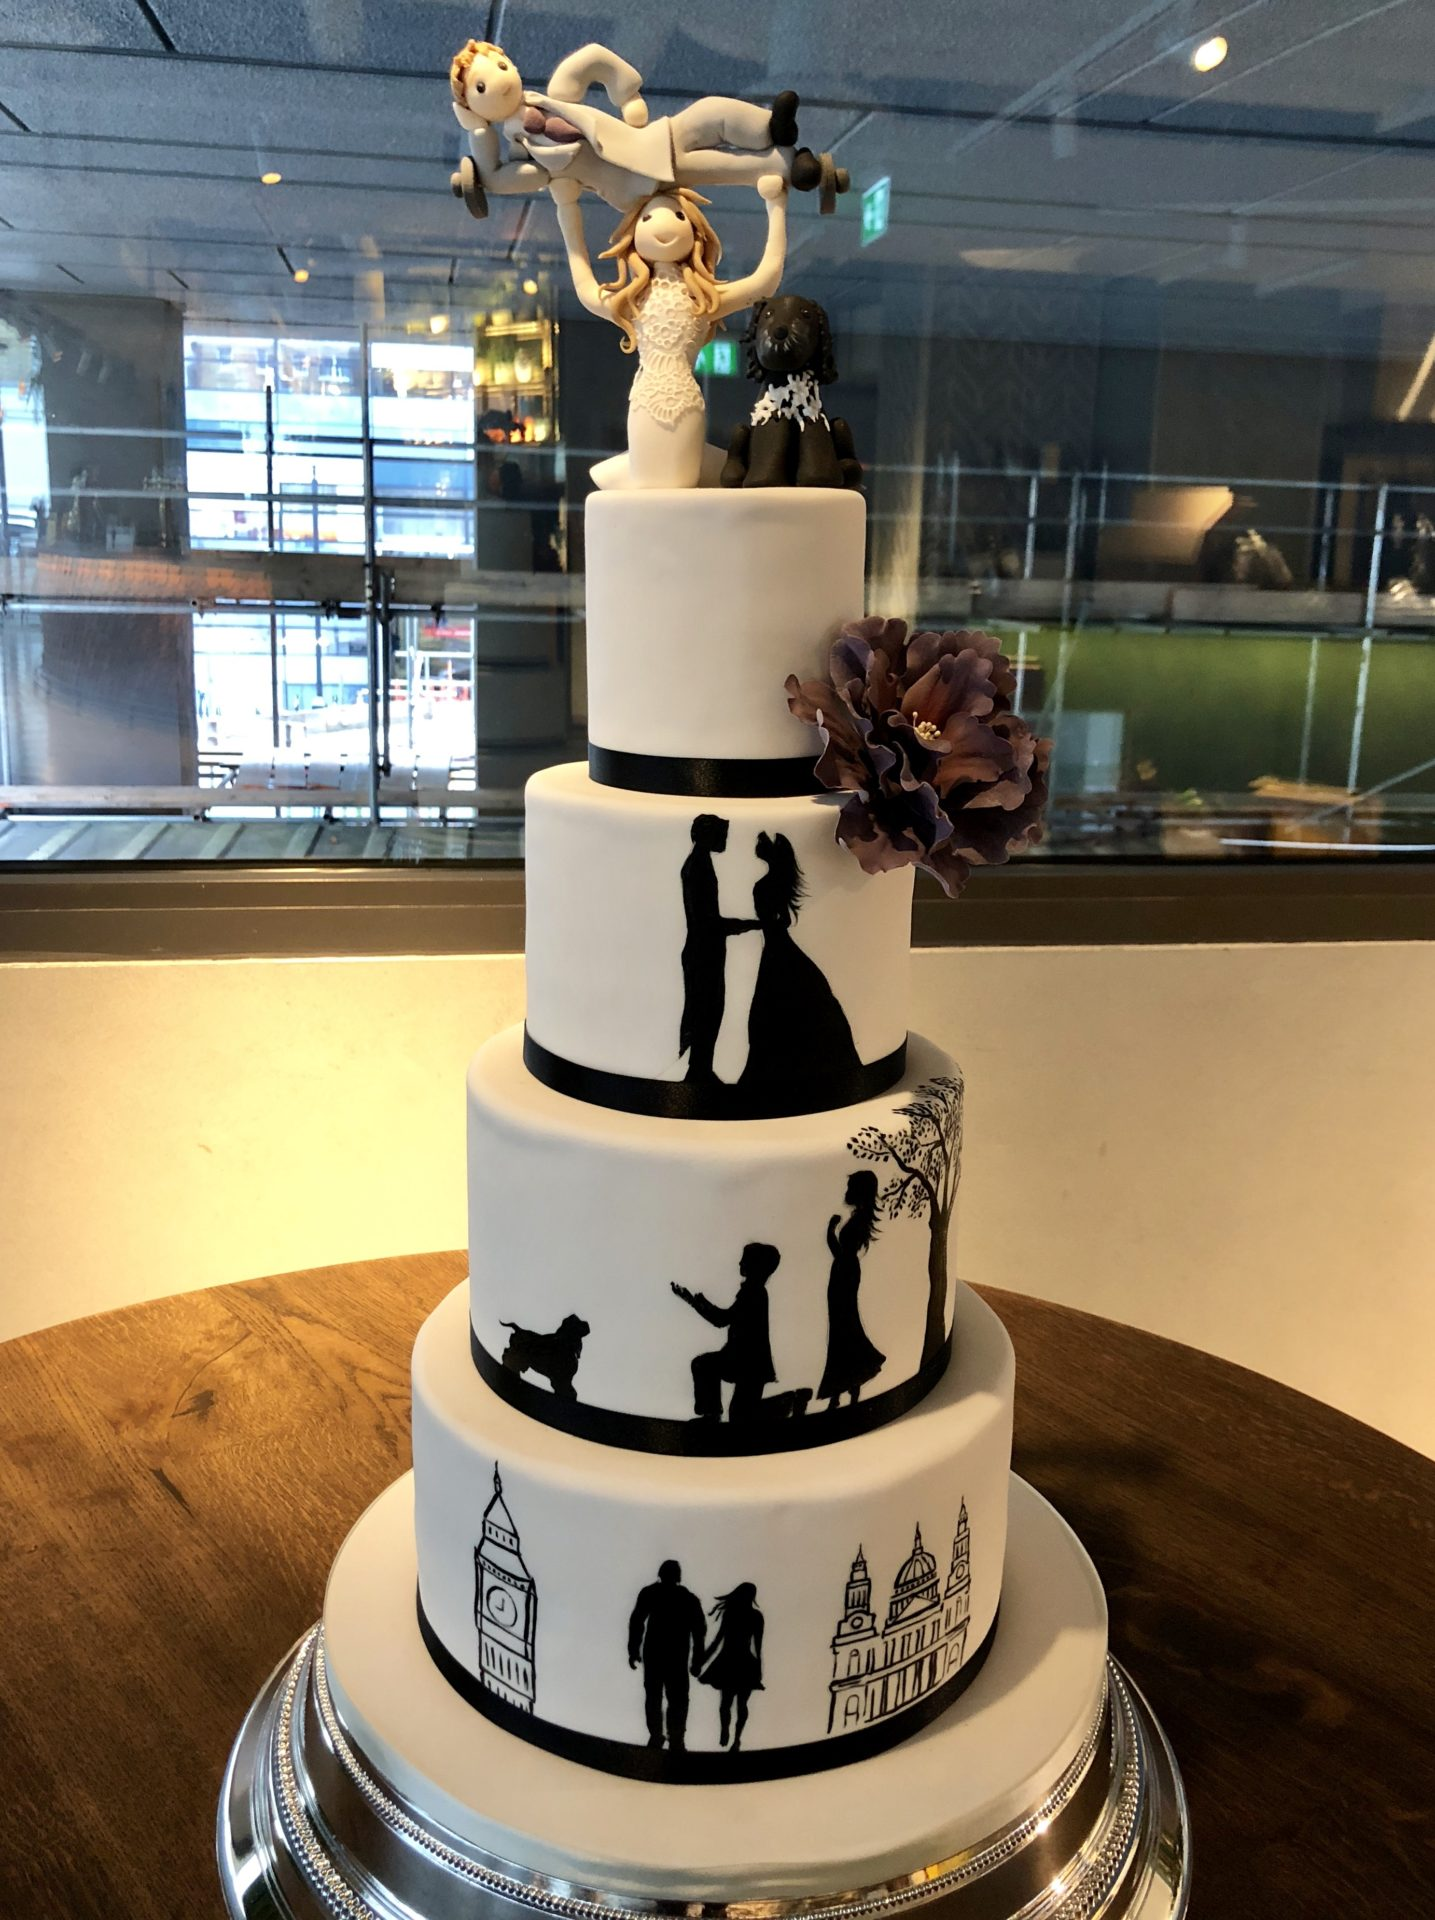 Hand Painted Wedding Cake with Sugar Figures